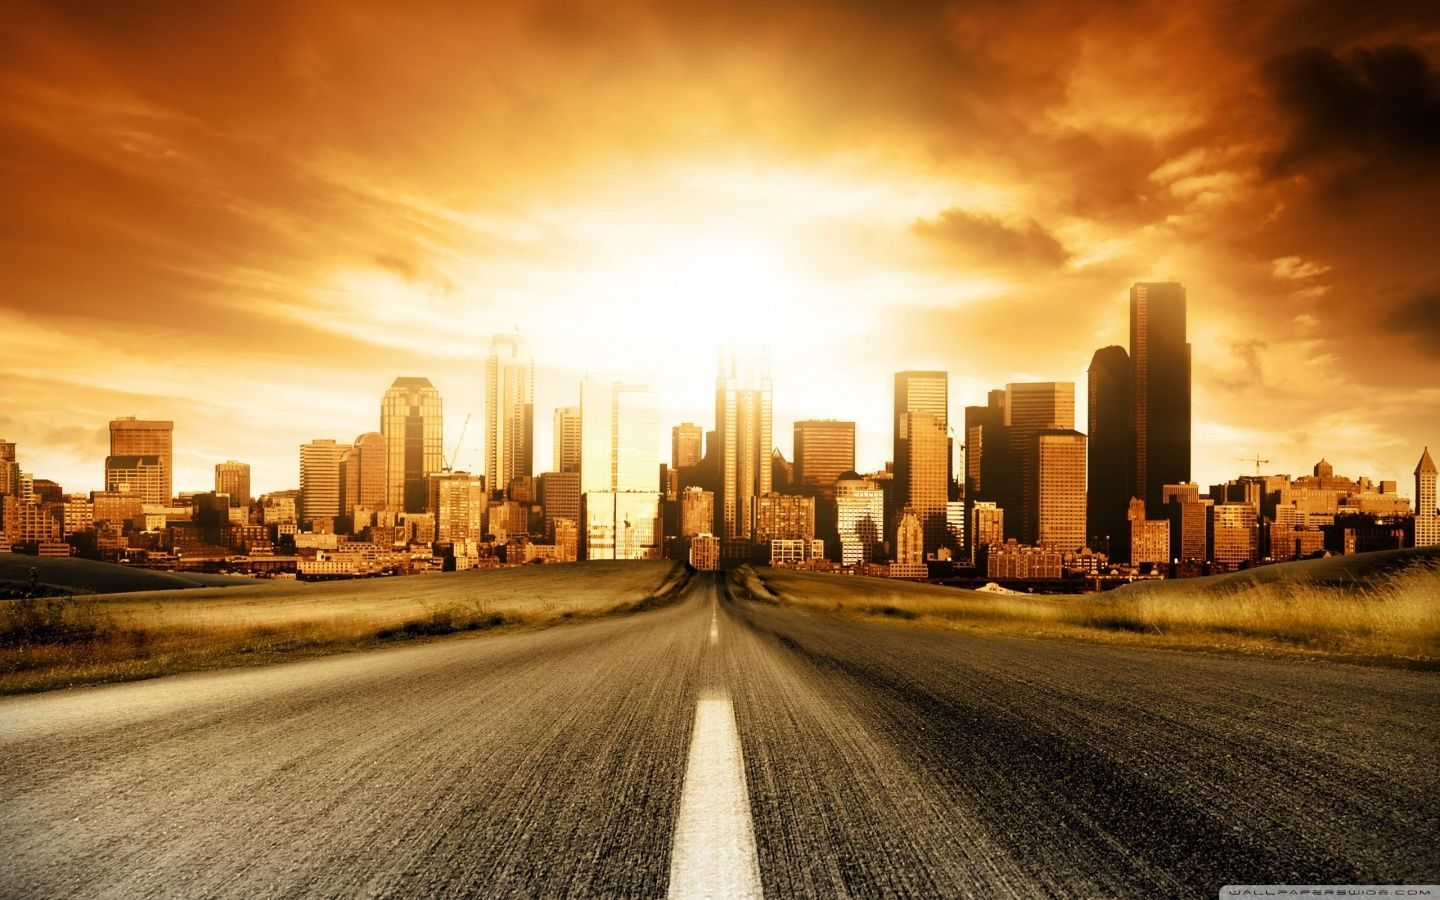 City Road Wallpaper Wide Sunset City Background For Photography City Backdrop